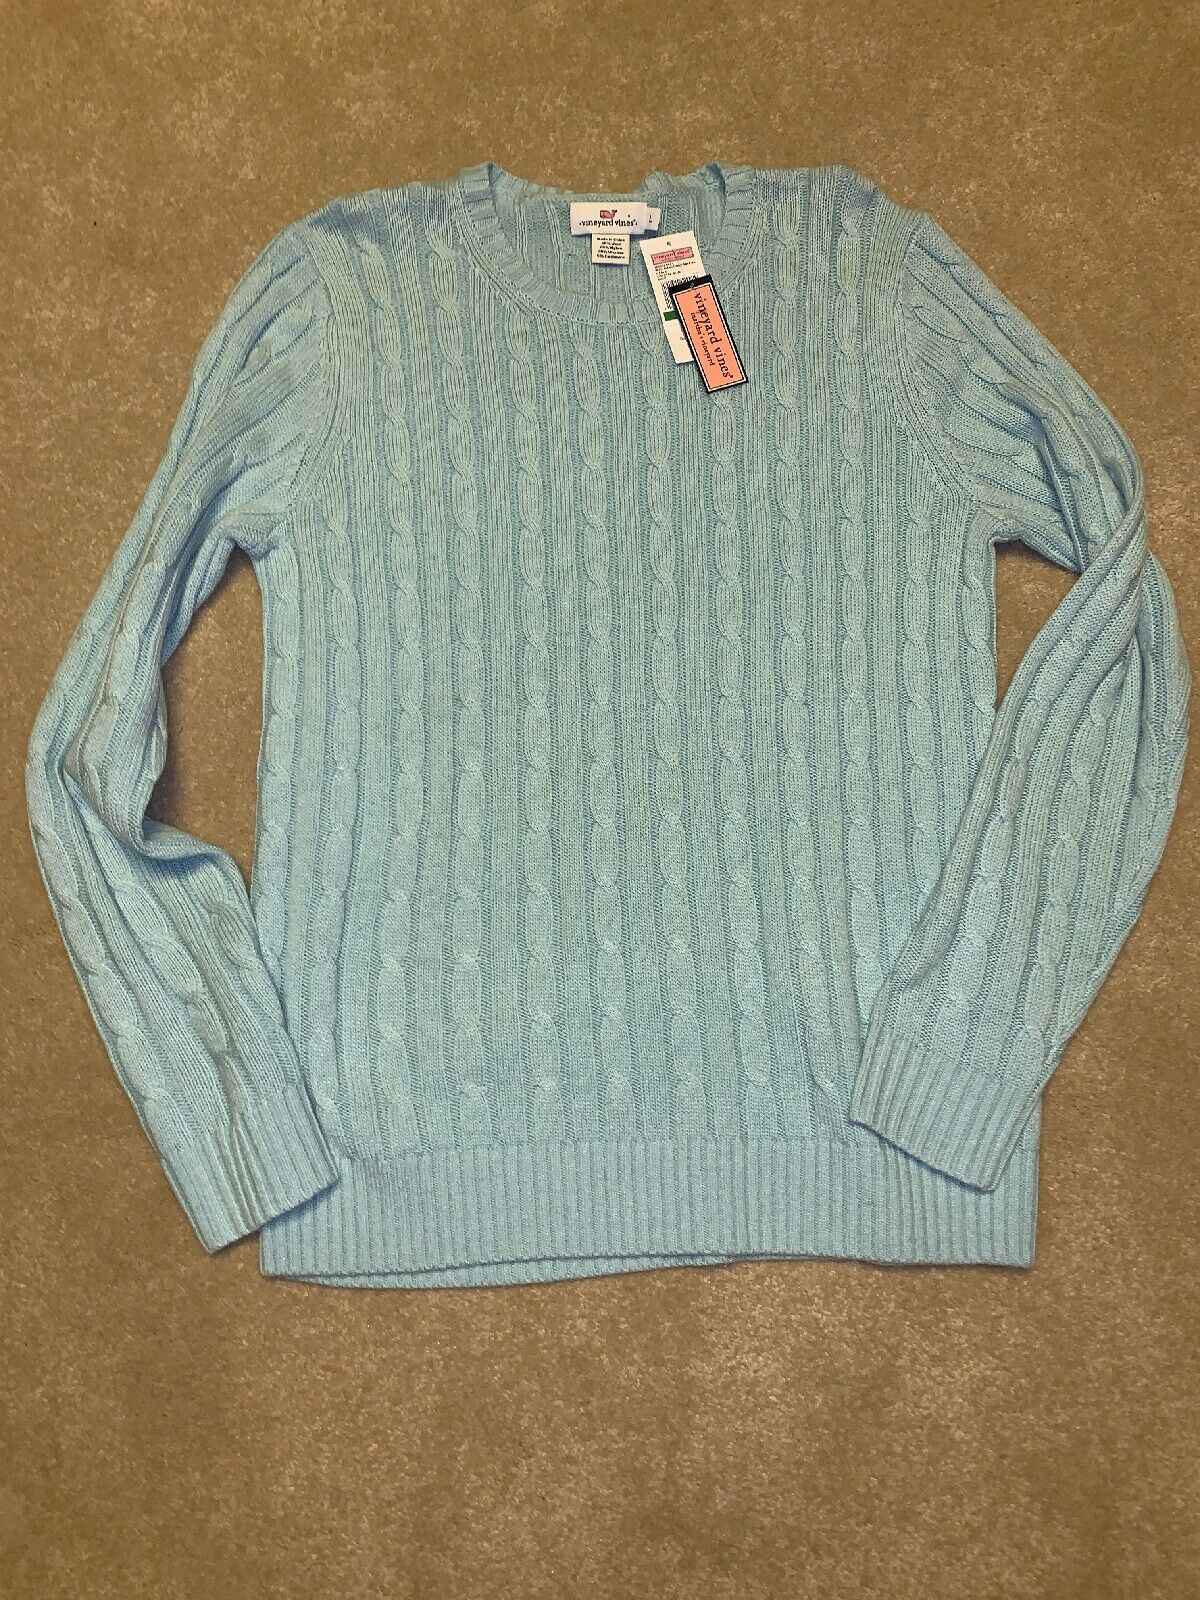 Vineyard Vines Womens Large L Wool Blend Cable Sweater Crystal bluee New Nwt